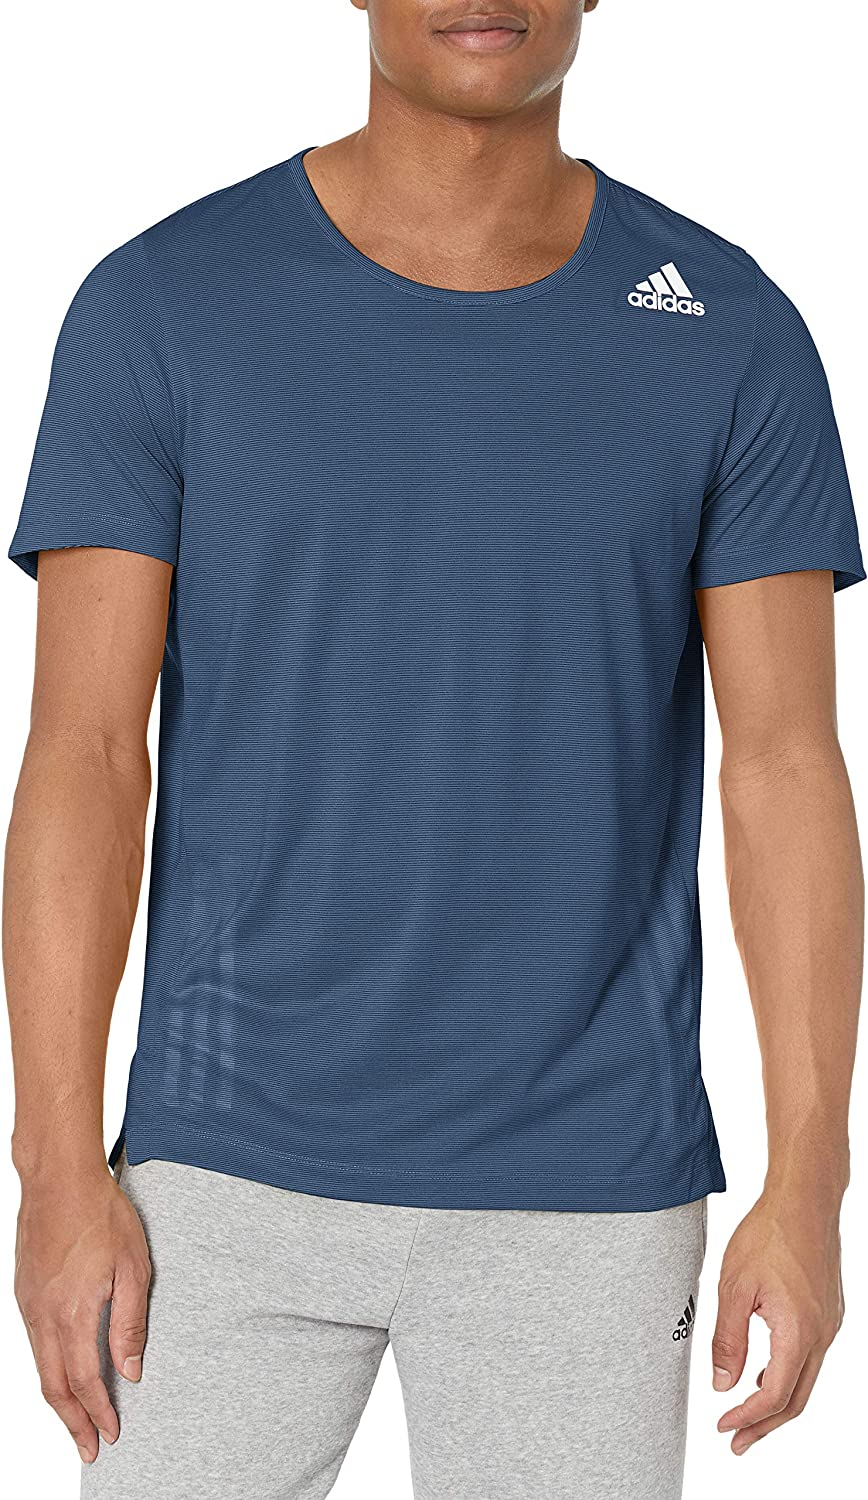 adidas Men's Aero National products Pb Free shipping on posting reviews Flow Tee